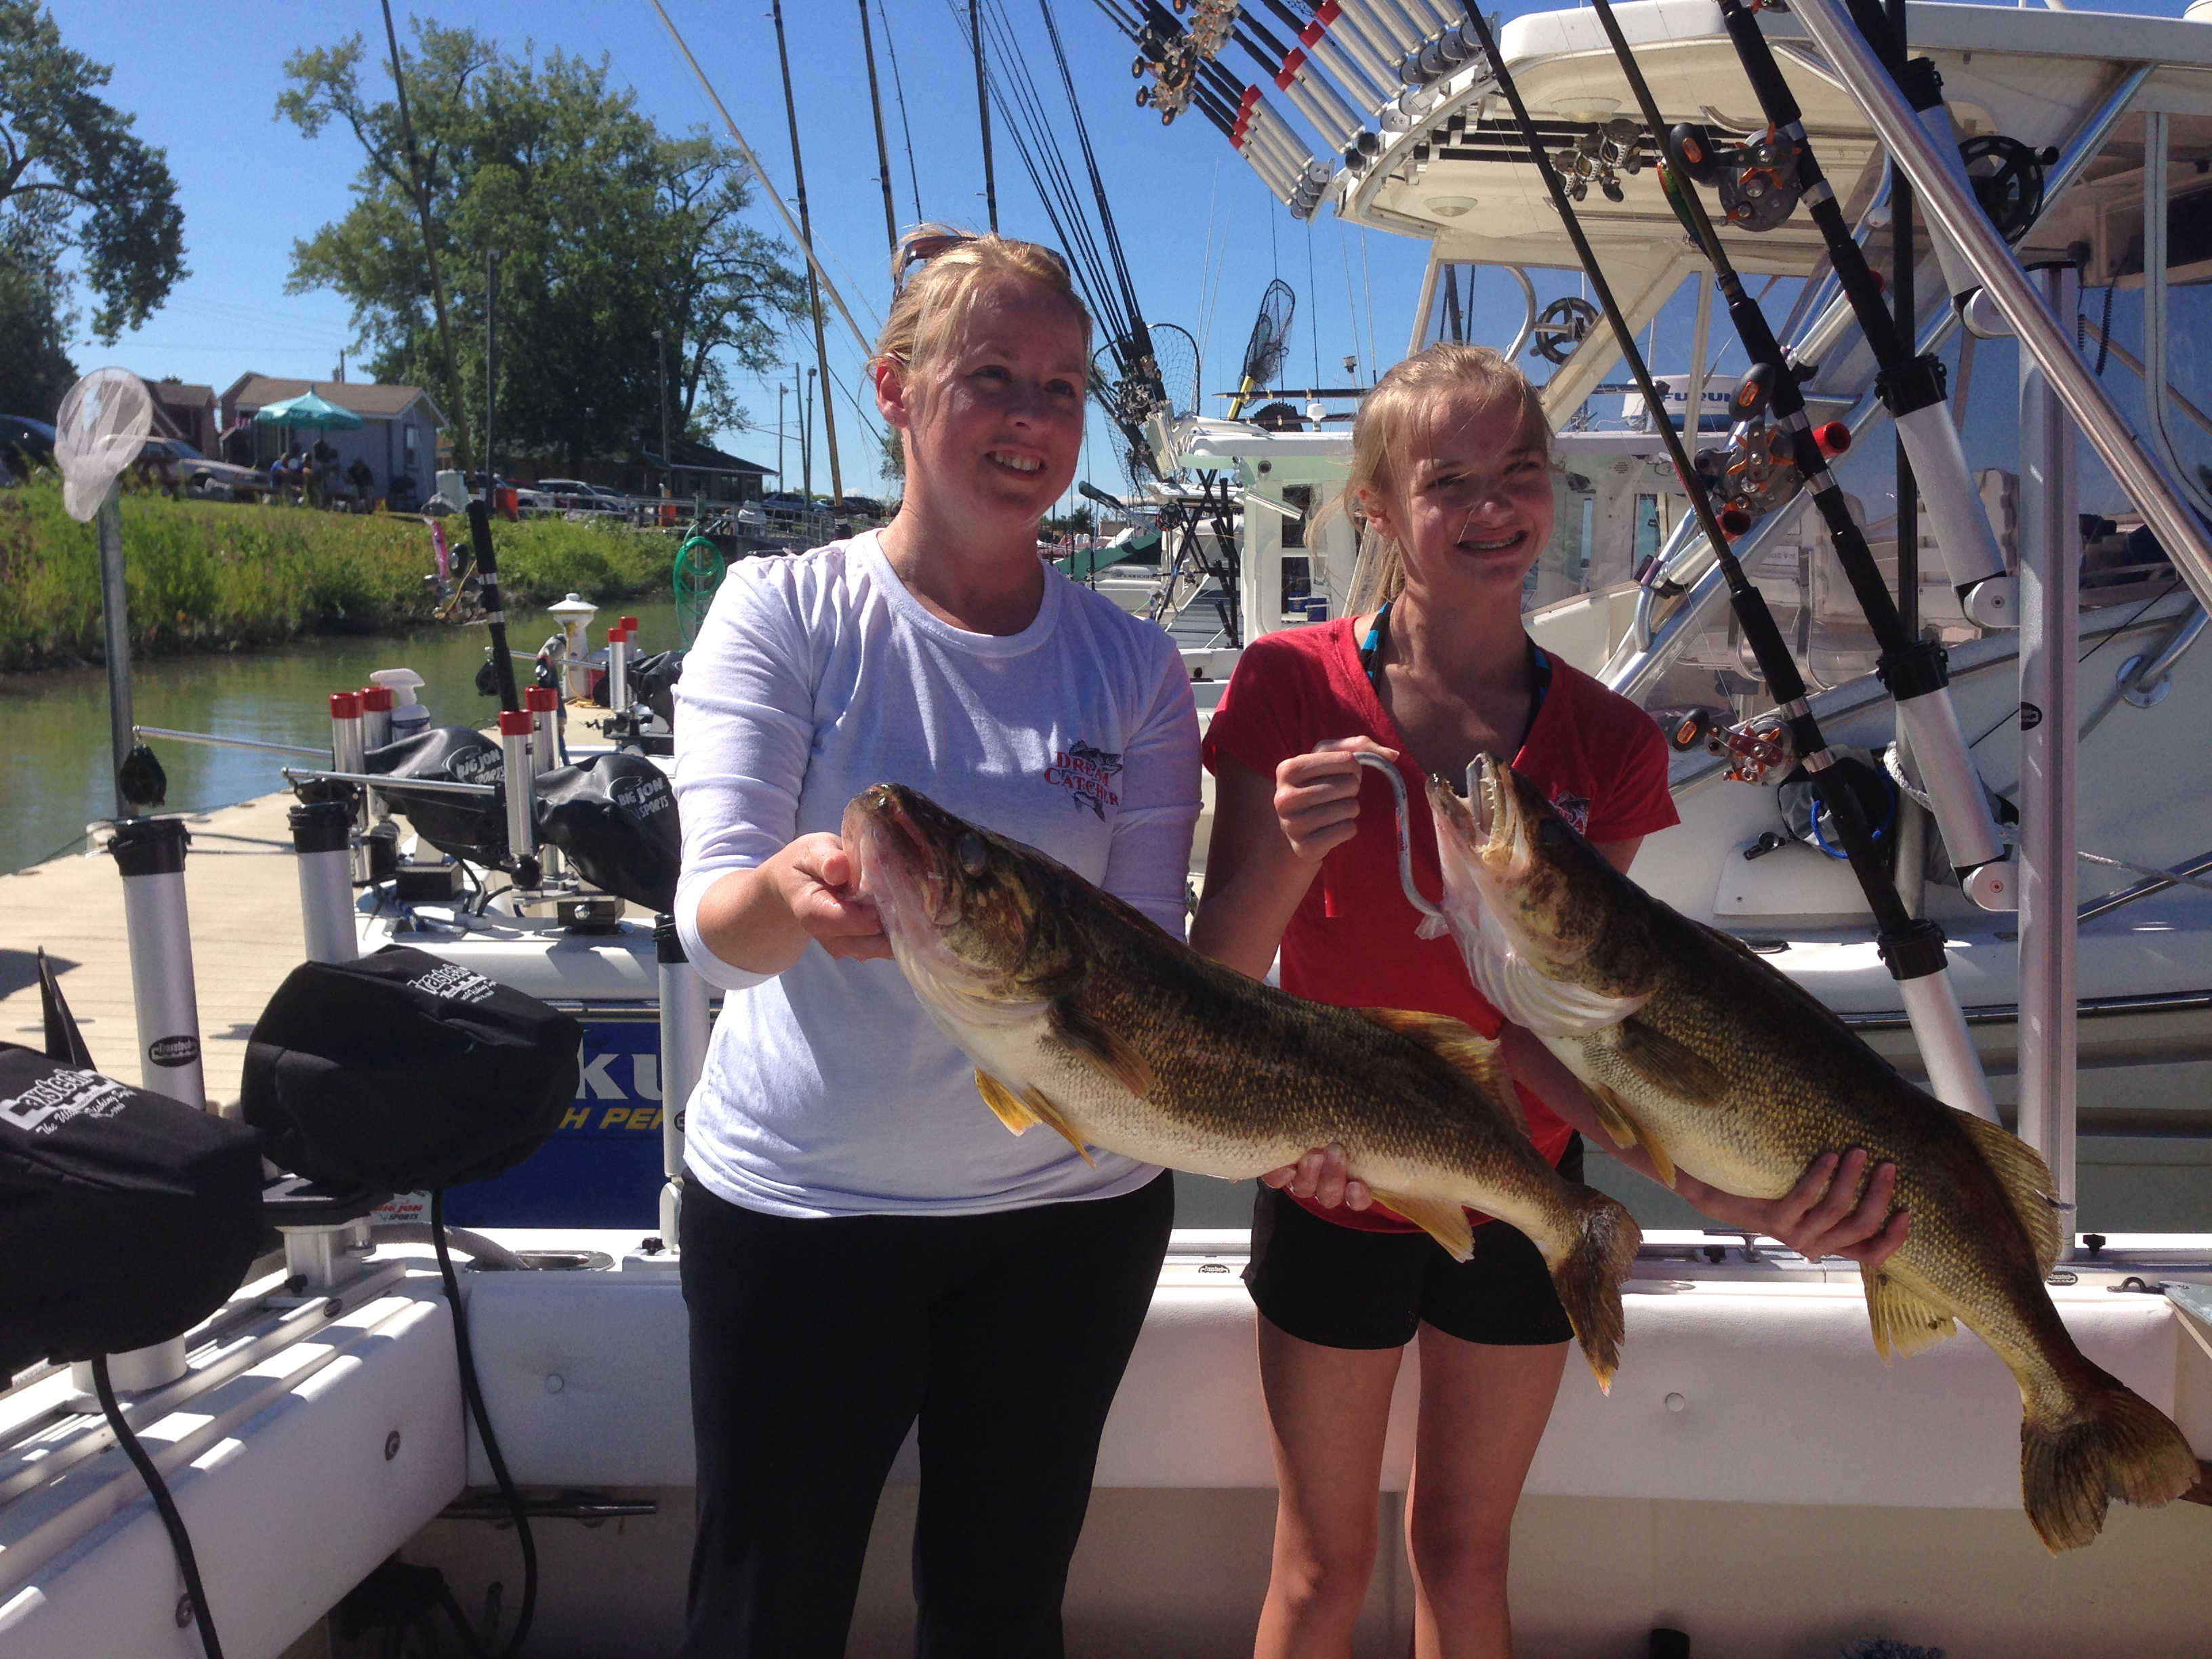 Lake erie fishing charters ny fishing charters ny for Lake erie fishing charters